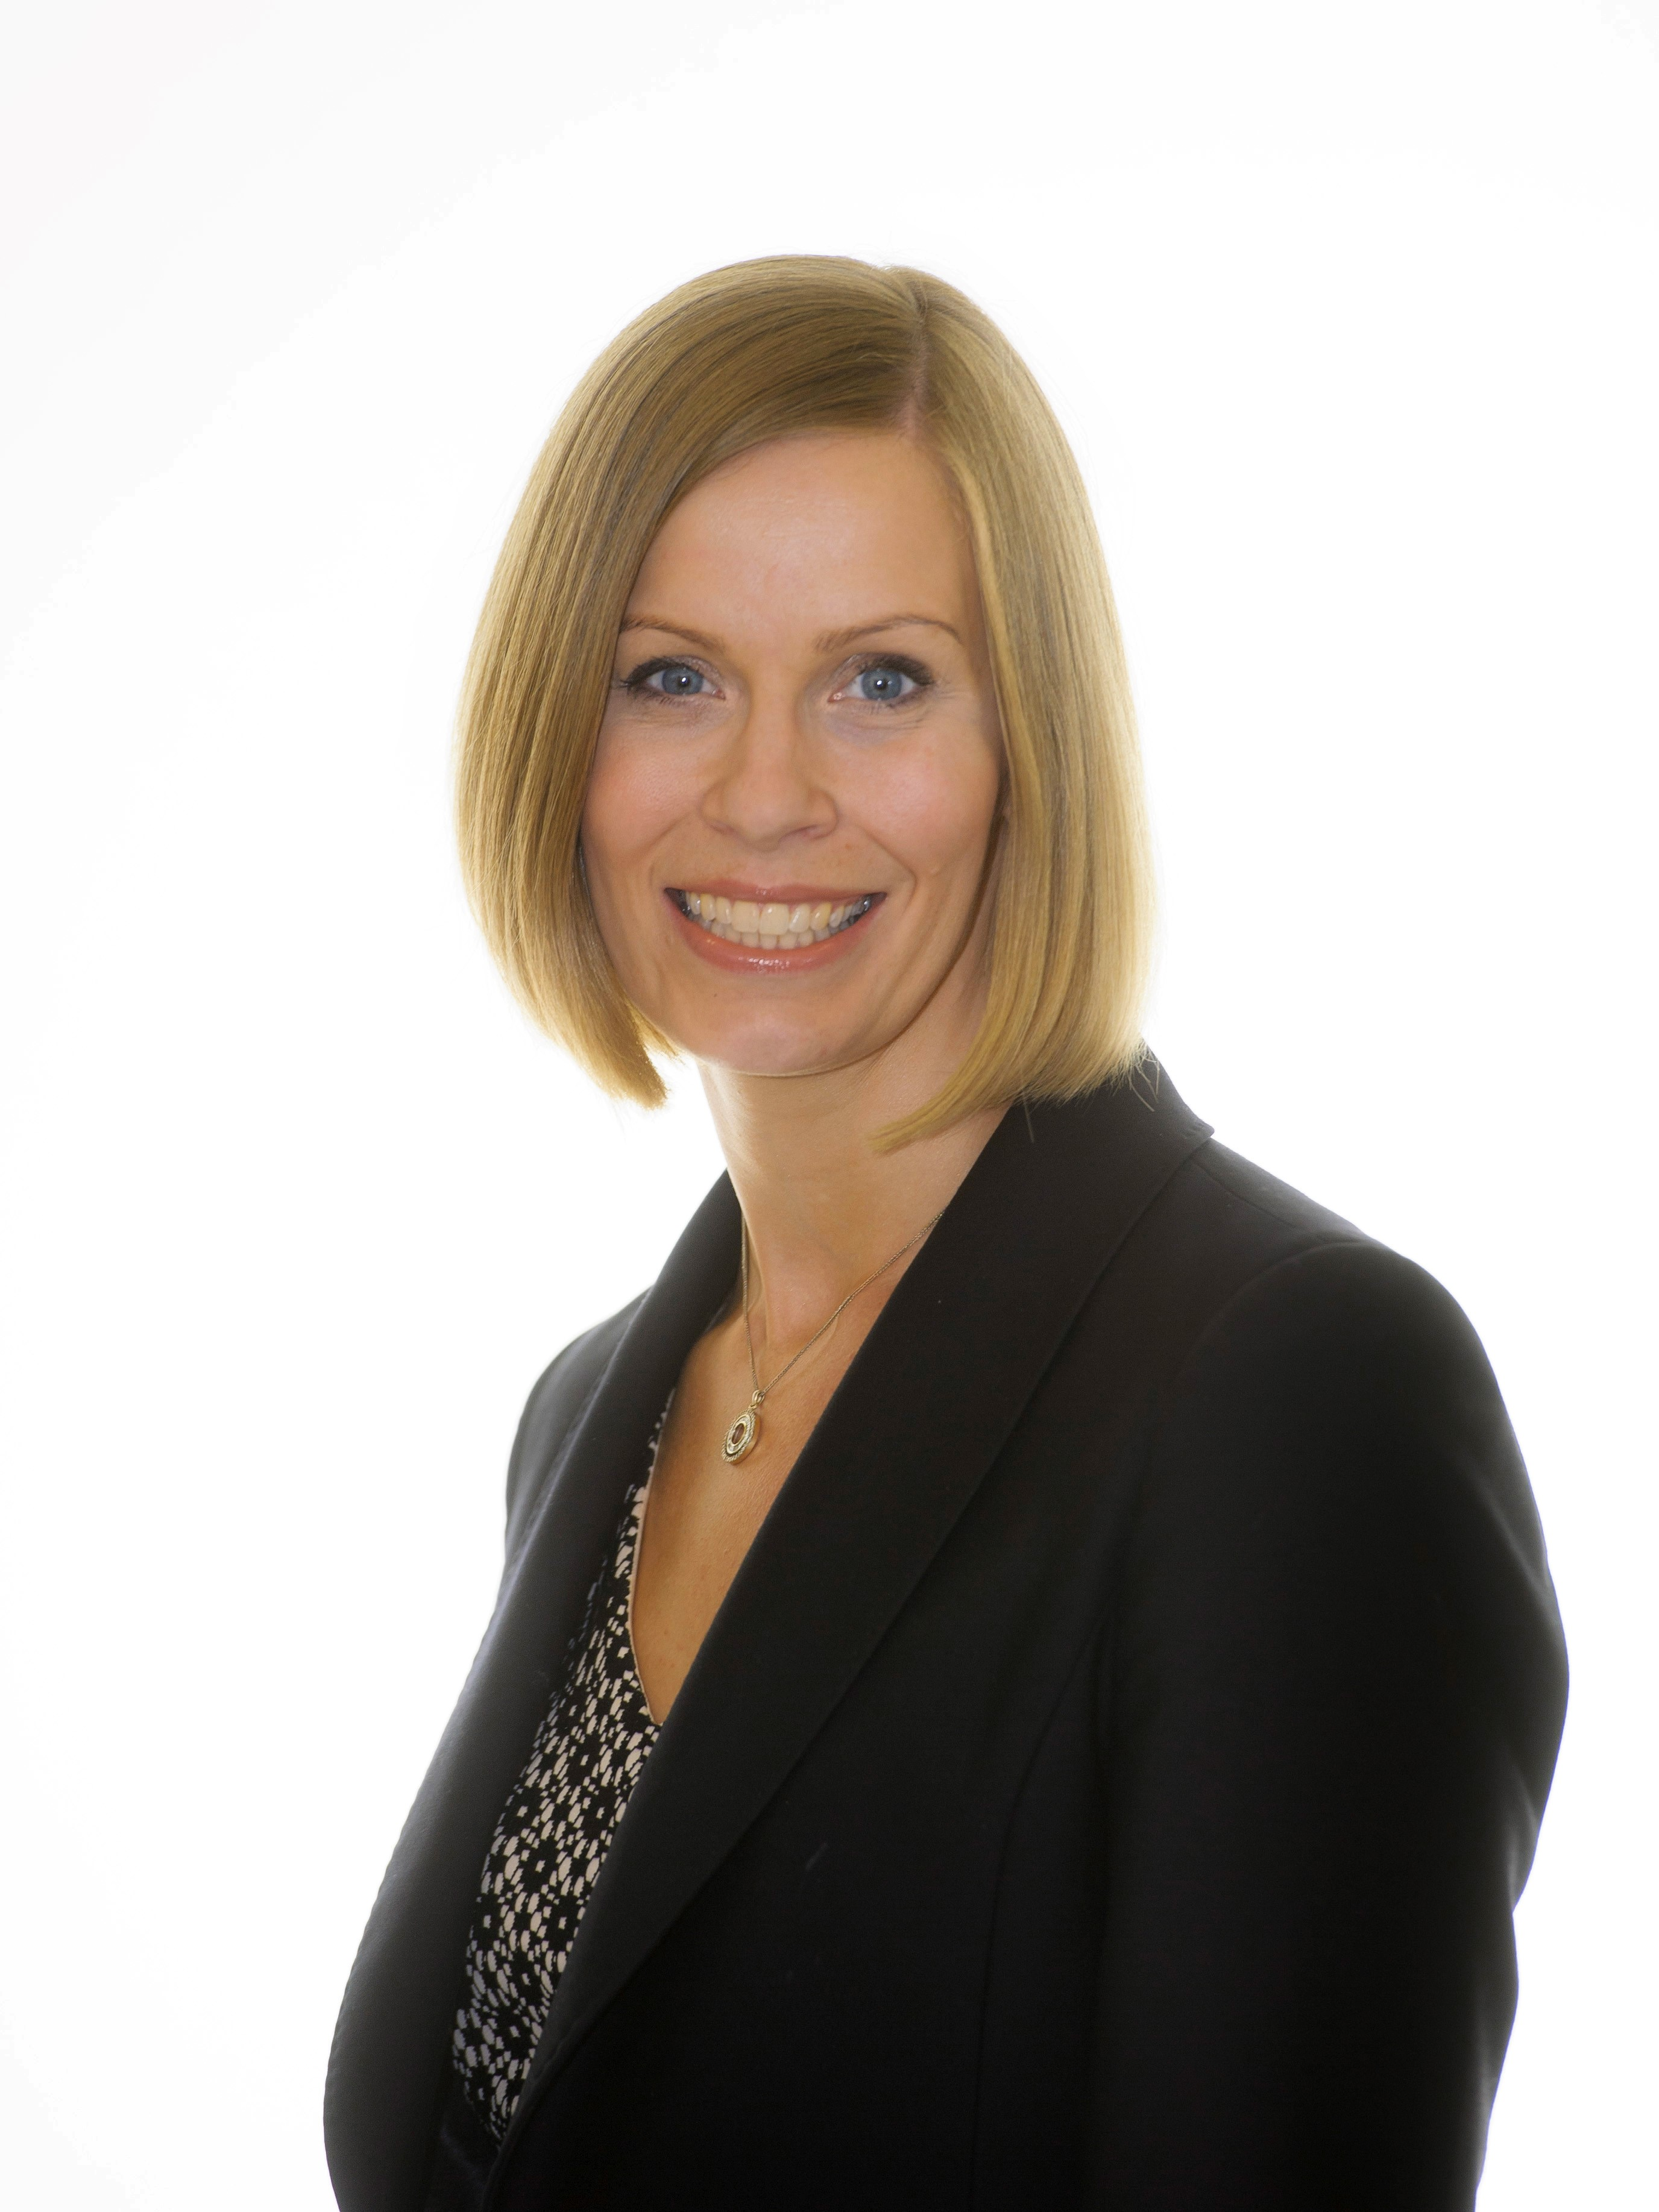 Alison Woods, Aberdeen-based partner at law firm CMS